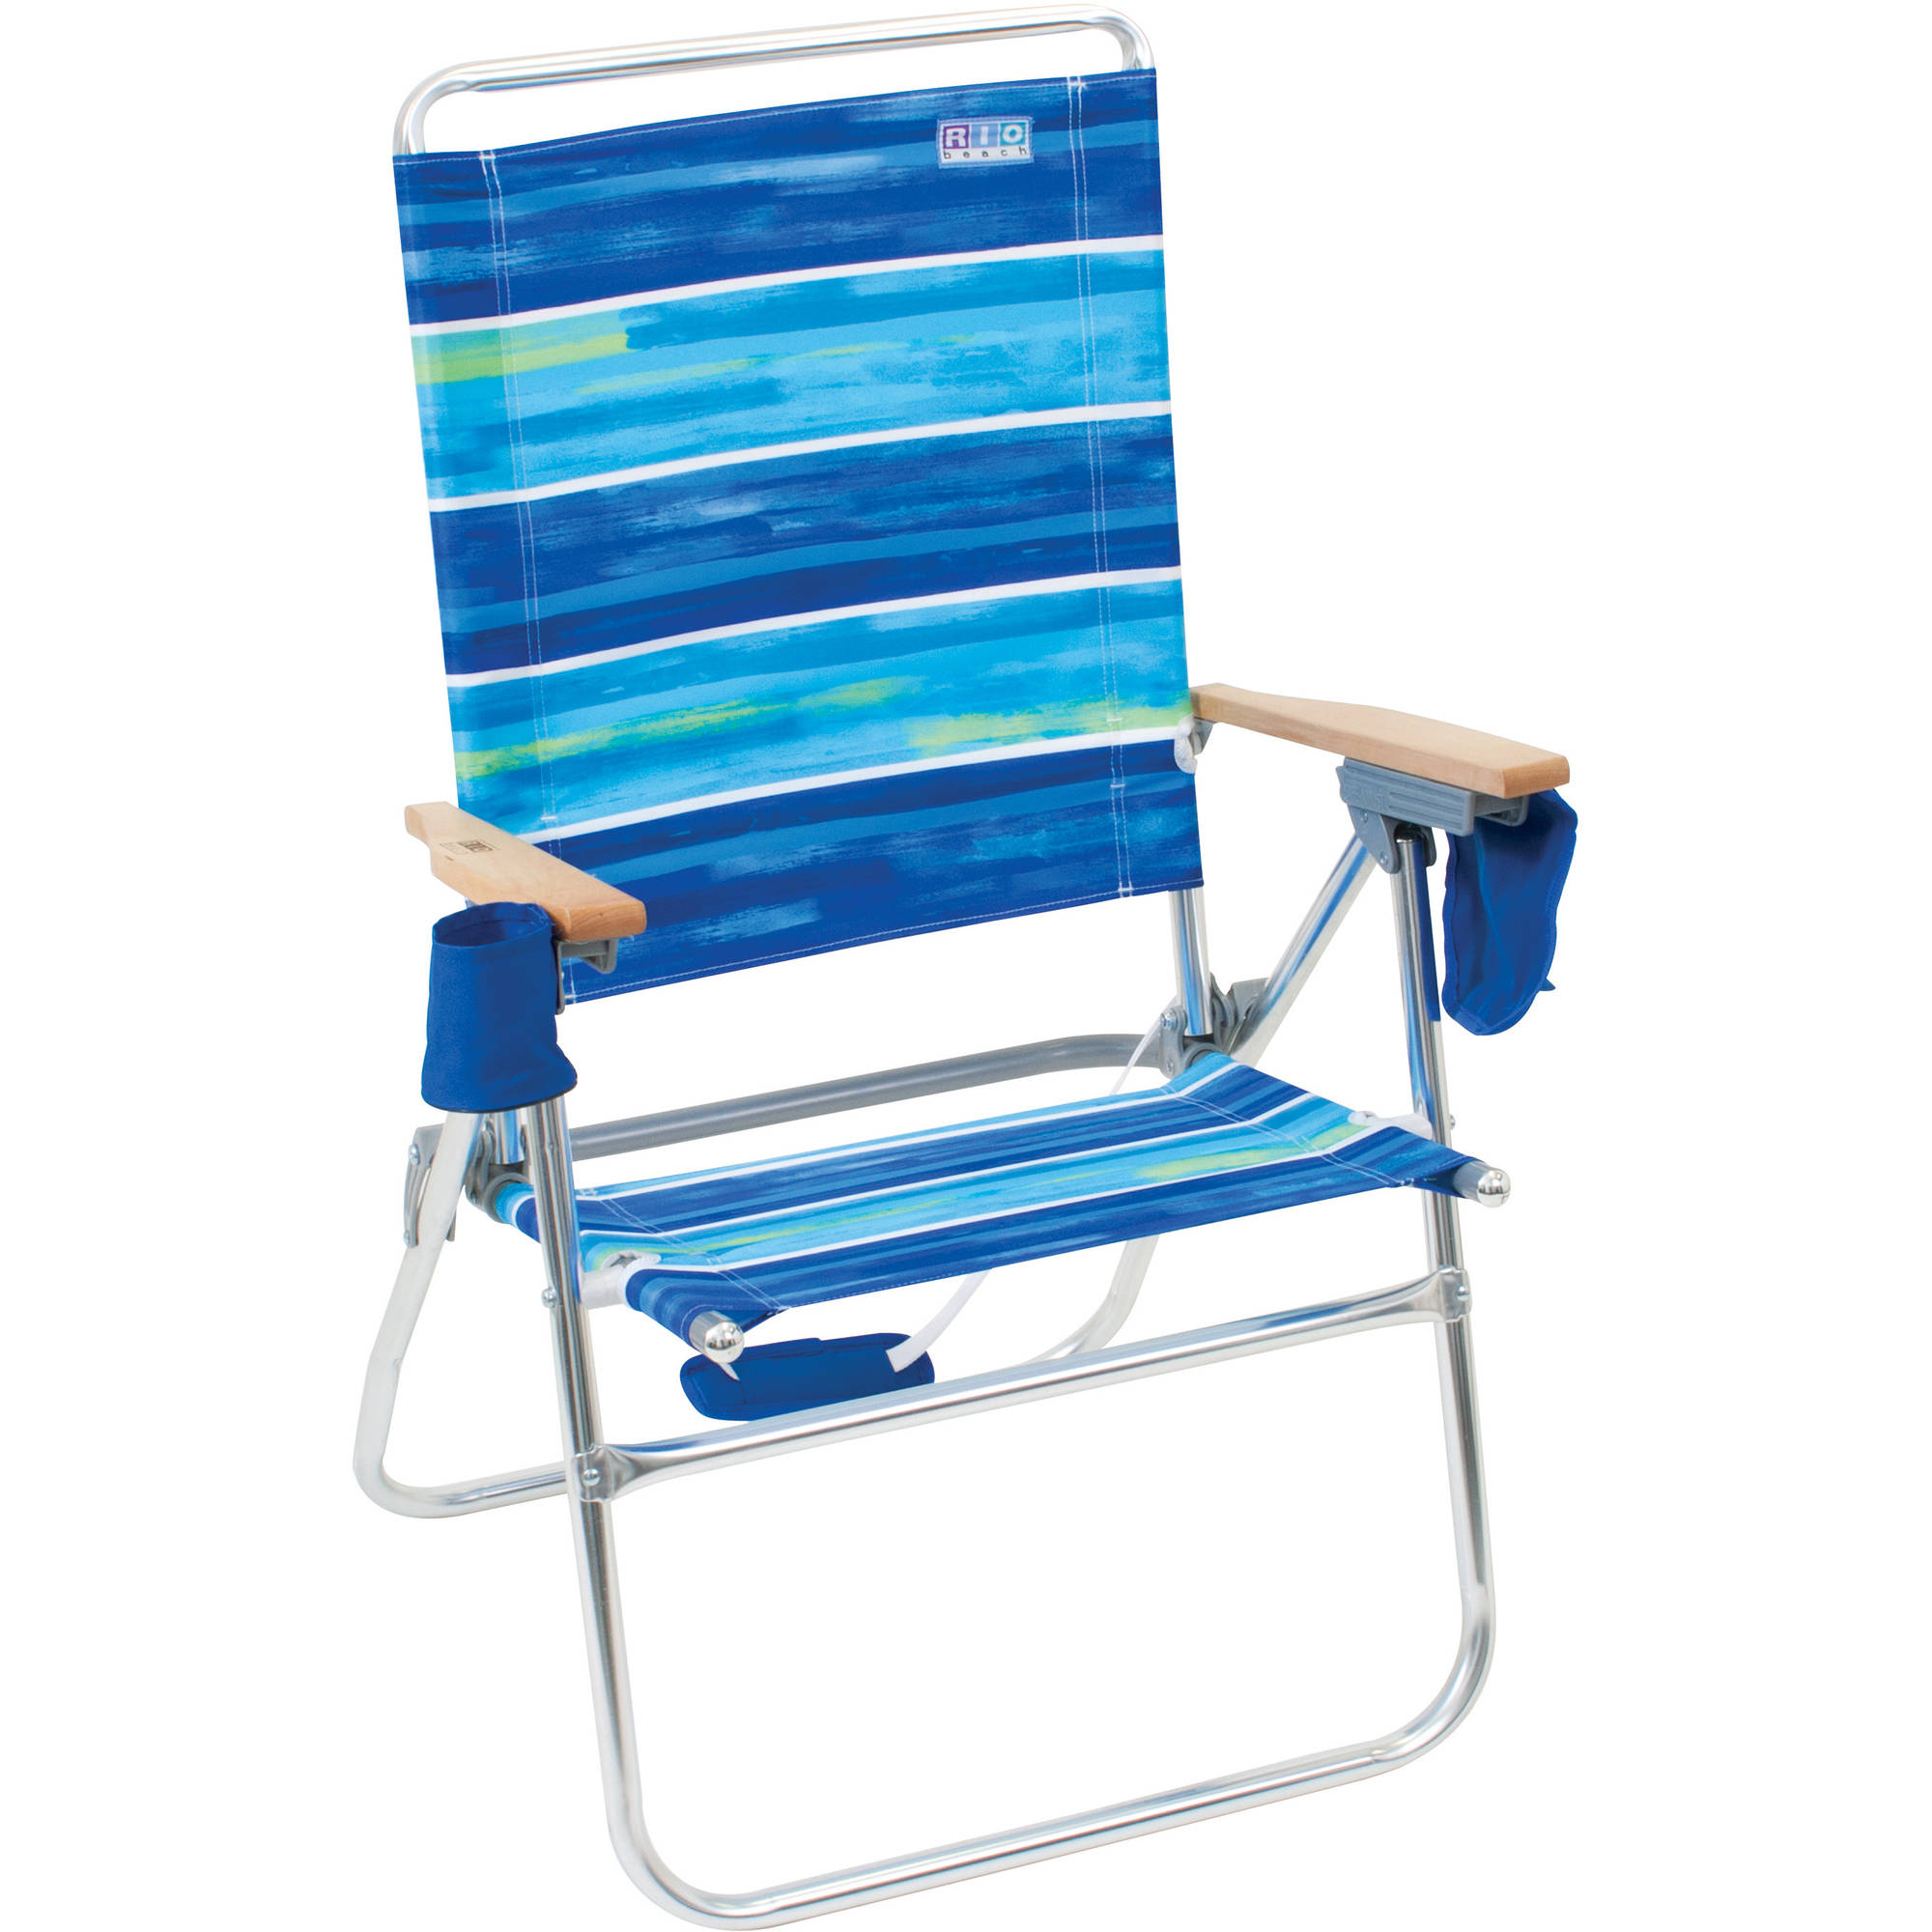 rio gear big guy backpack chair blue. rio deluxe hi-boy beach chair gear big guy backpack blue